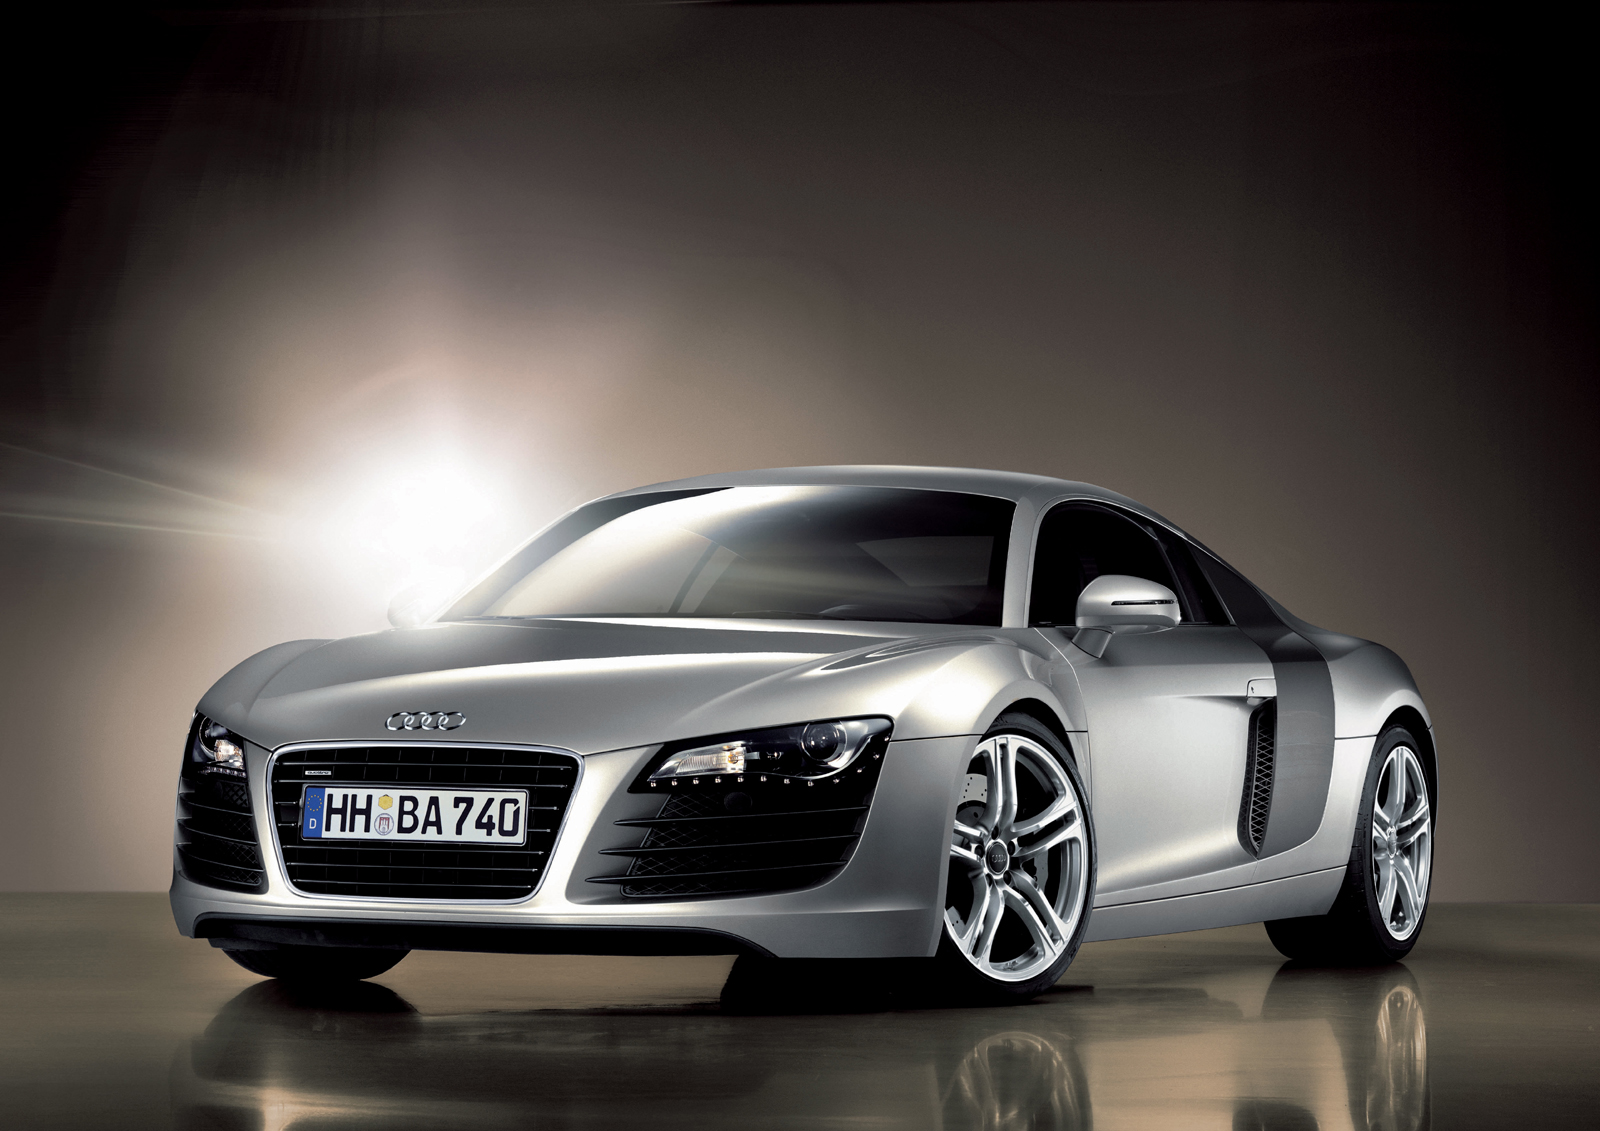 audi r8 audi photo 266339 fanpop. Black Bedroom Furniture Sets. Home Design Ideas